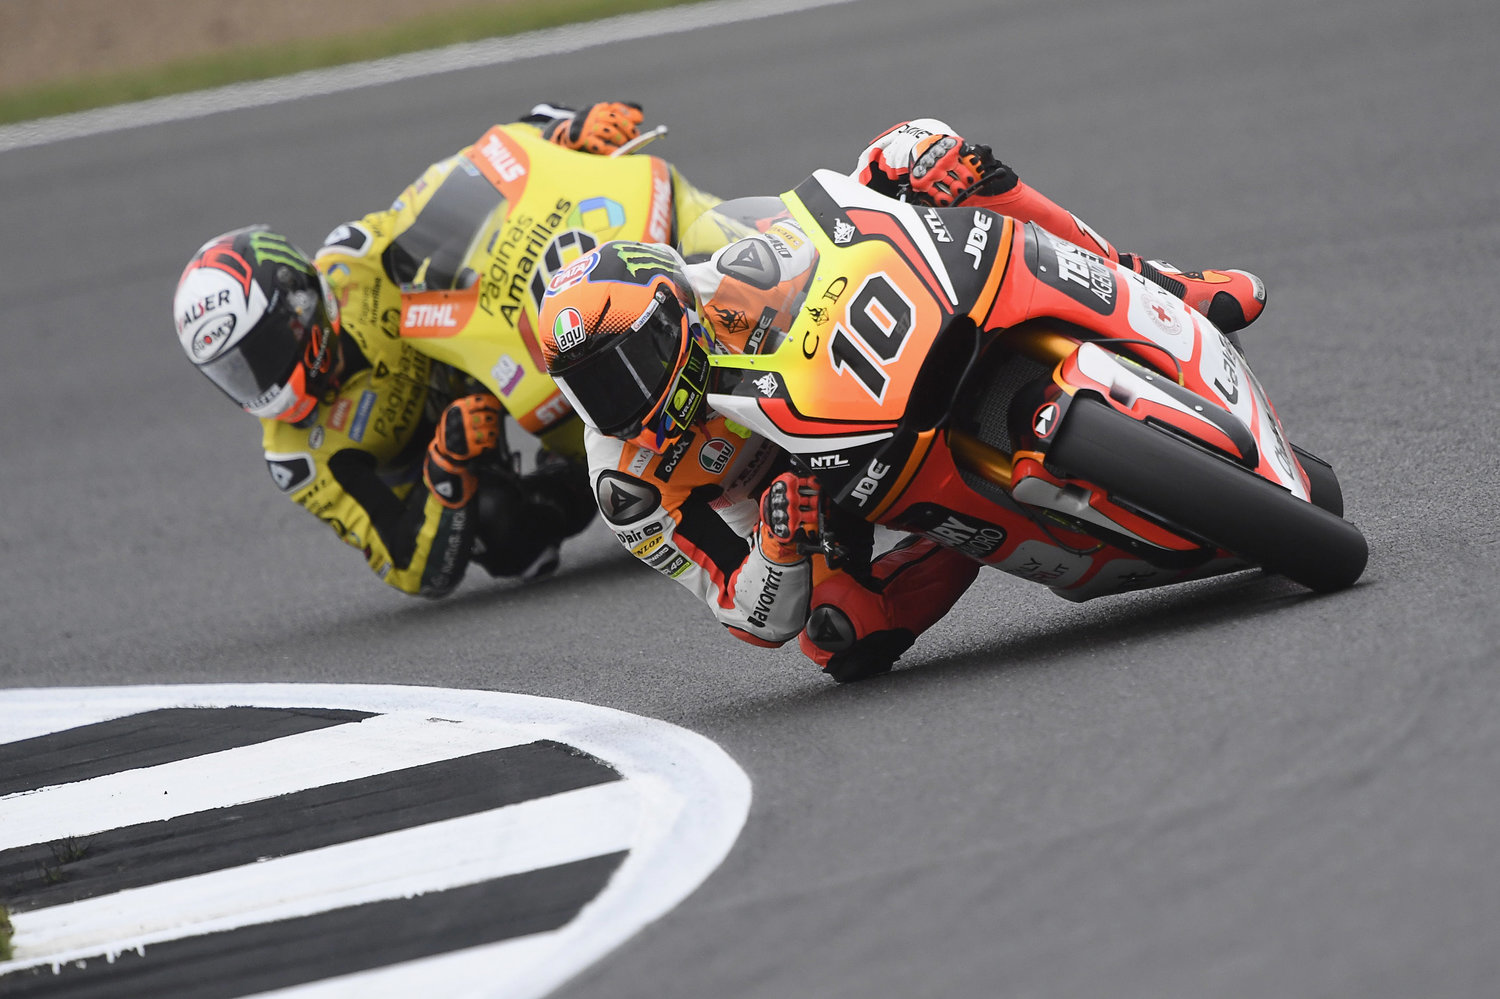 Baldassarri and Marini's free practice interrupted by the rain